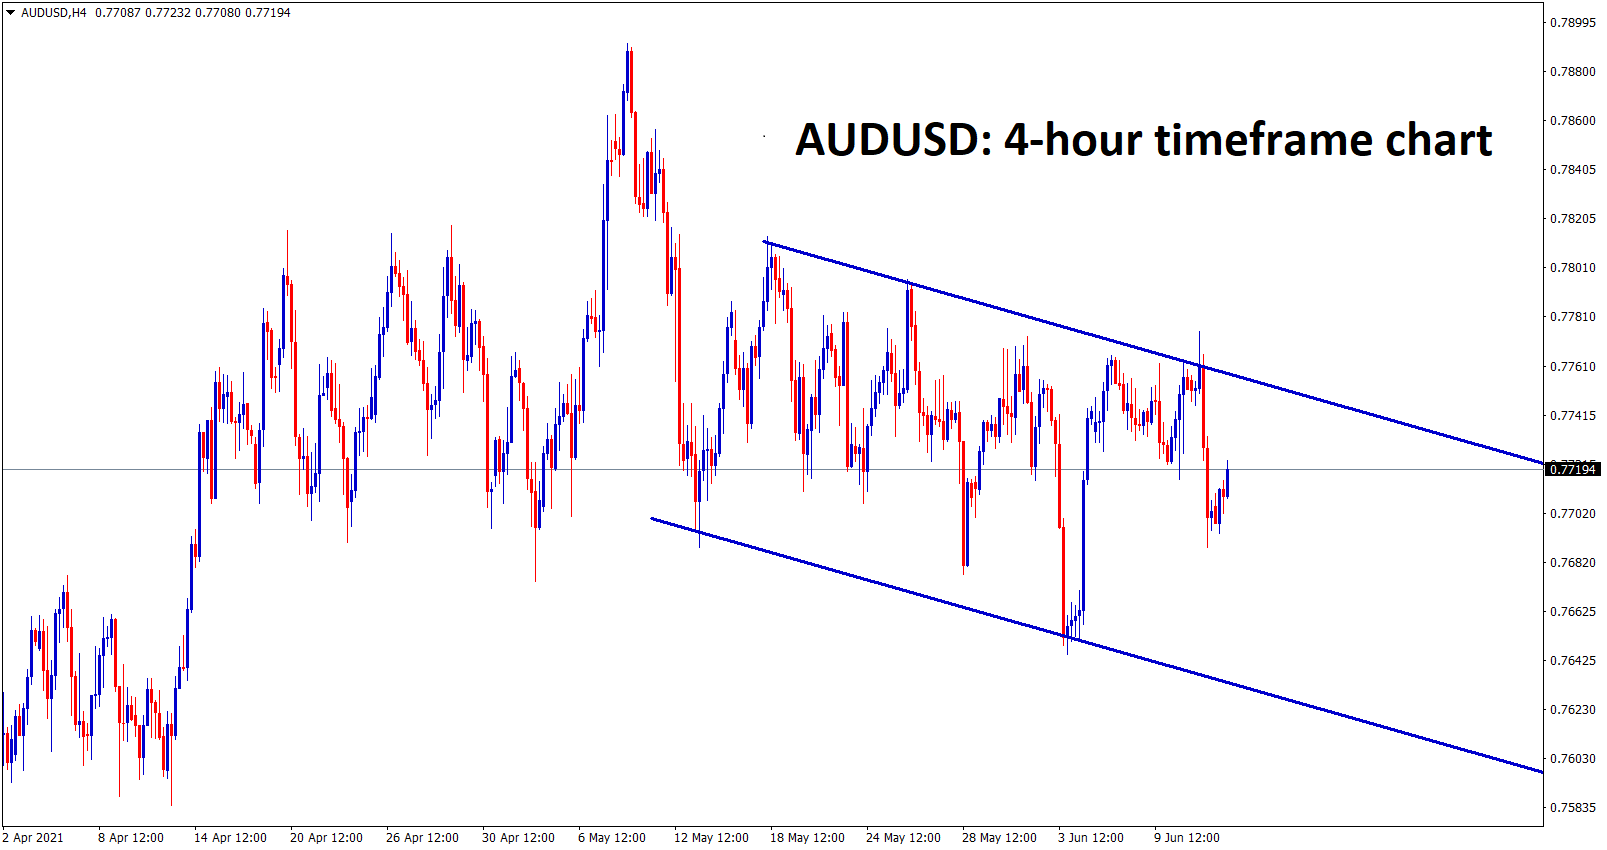 AUDUSD is moving up and down between the specific price boundary